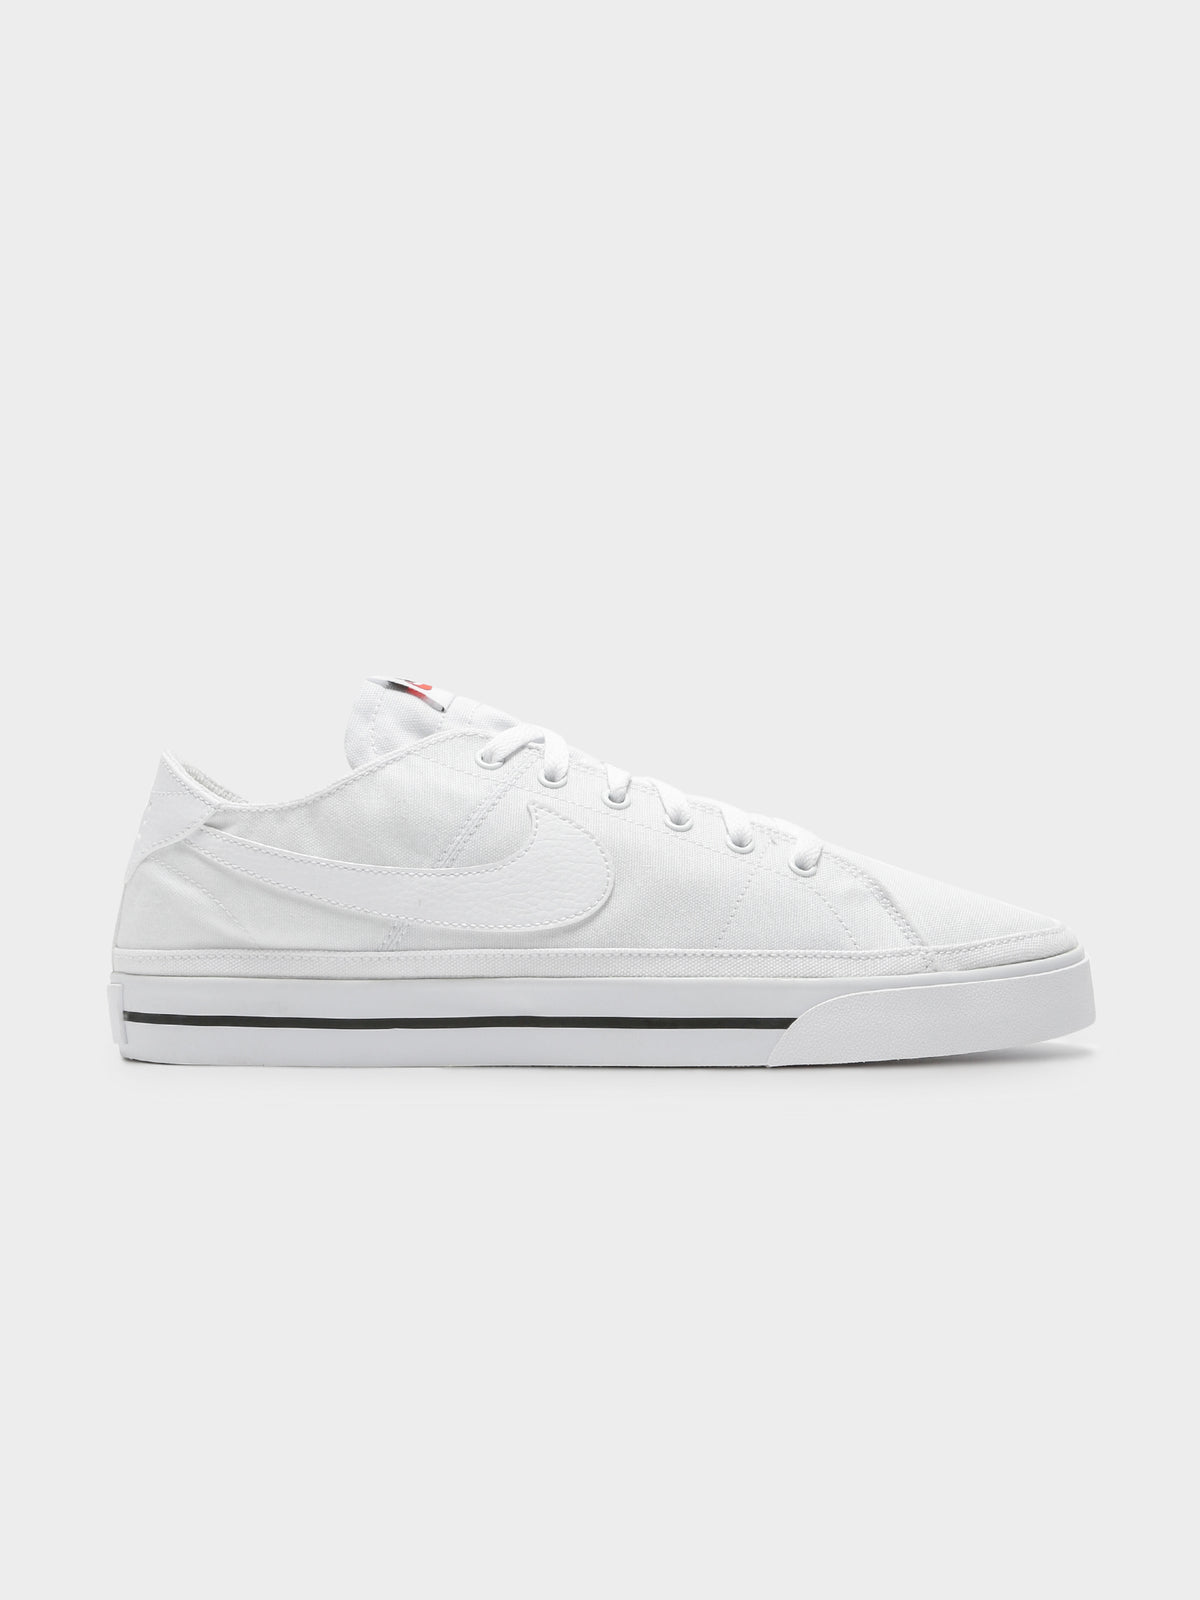 Mens Court Legacy Canvas Sneaker in White